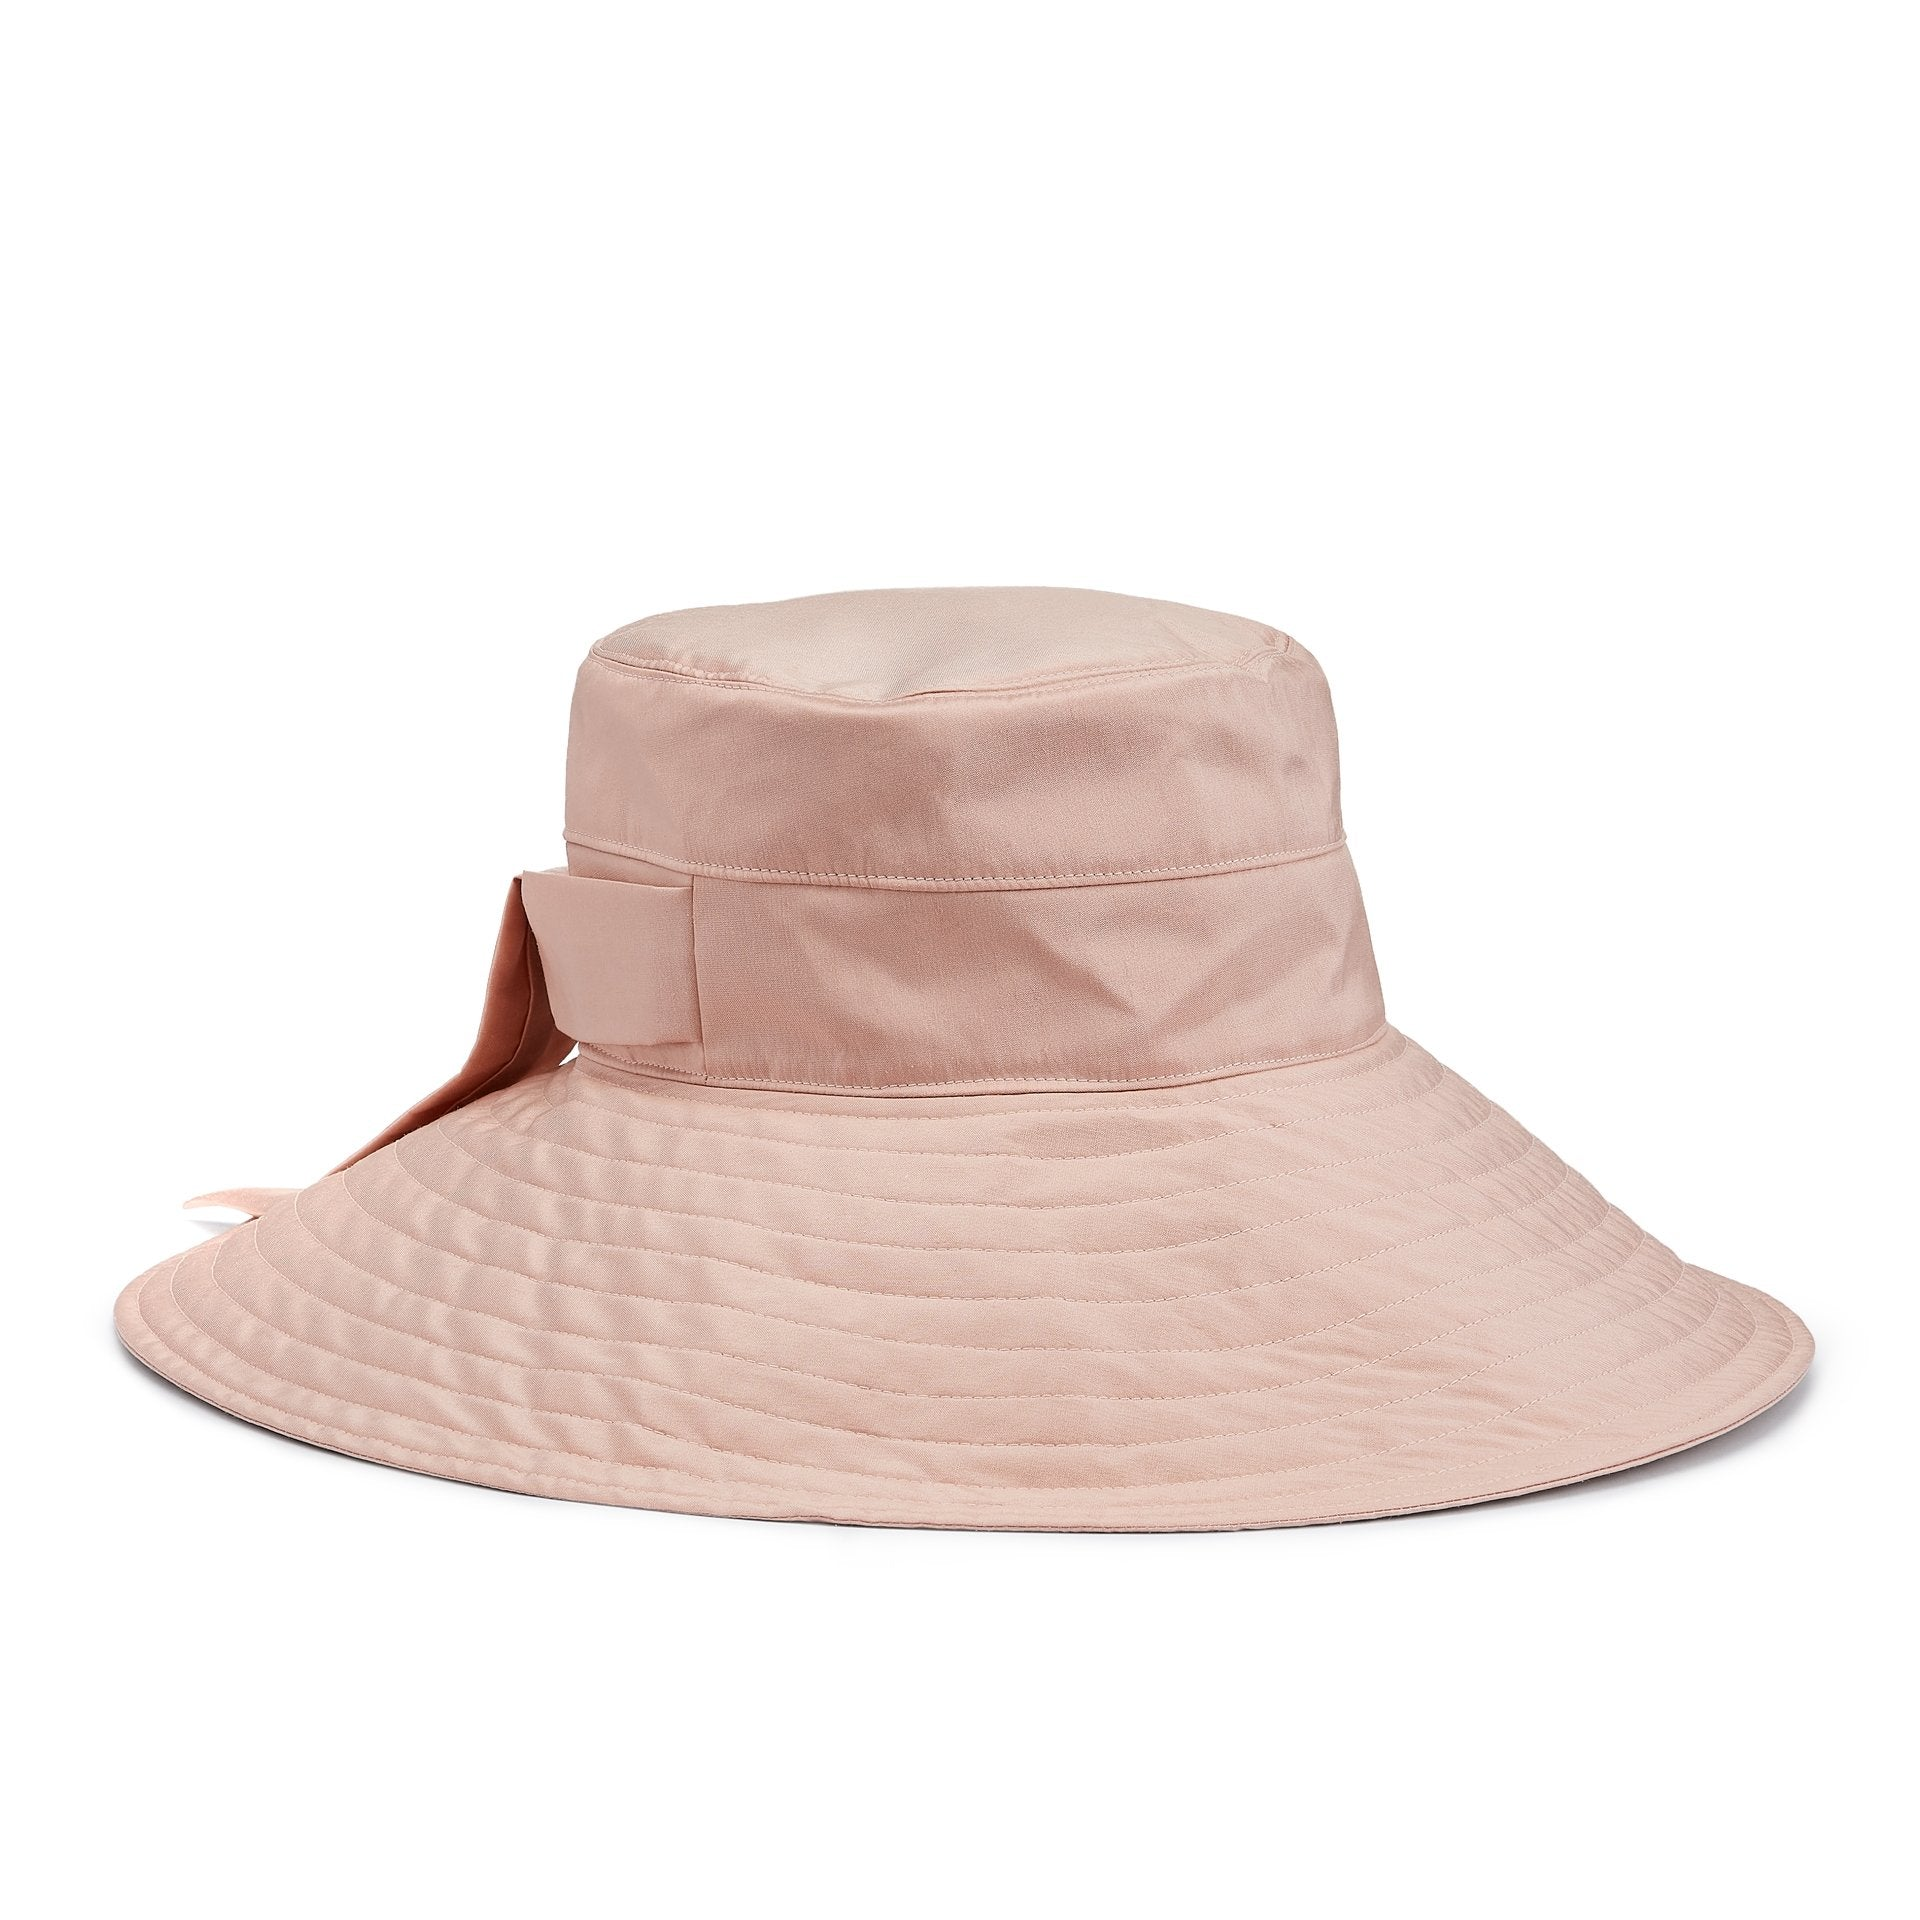 Clemence silk sun hat - Panamas, Straw and Sun Hats for Women - Lock & Co. Hatters London UK